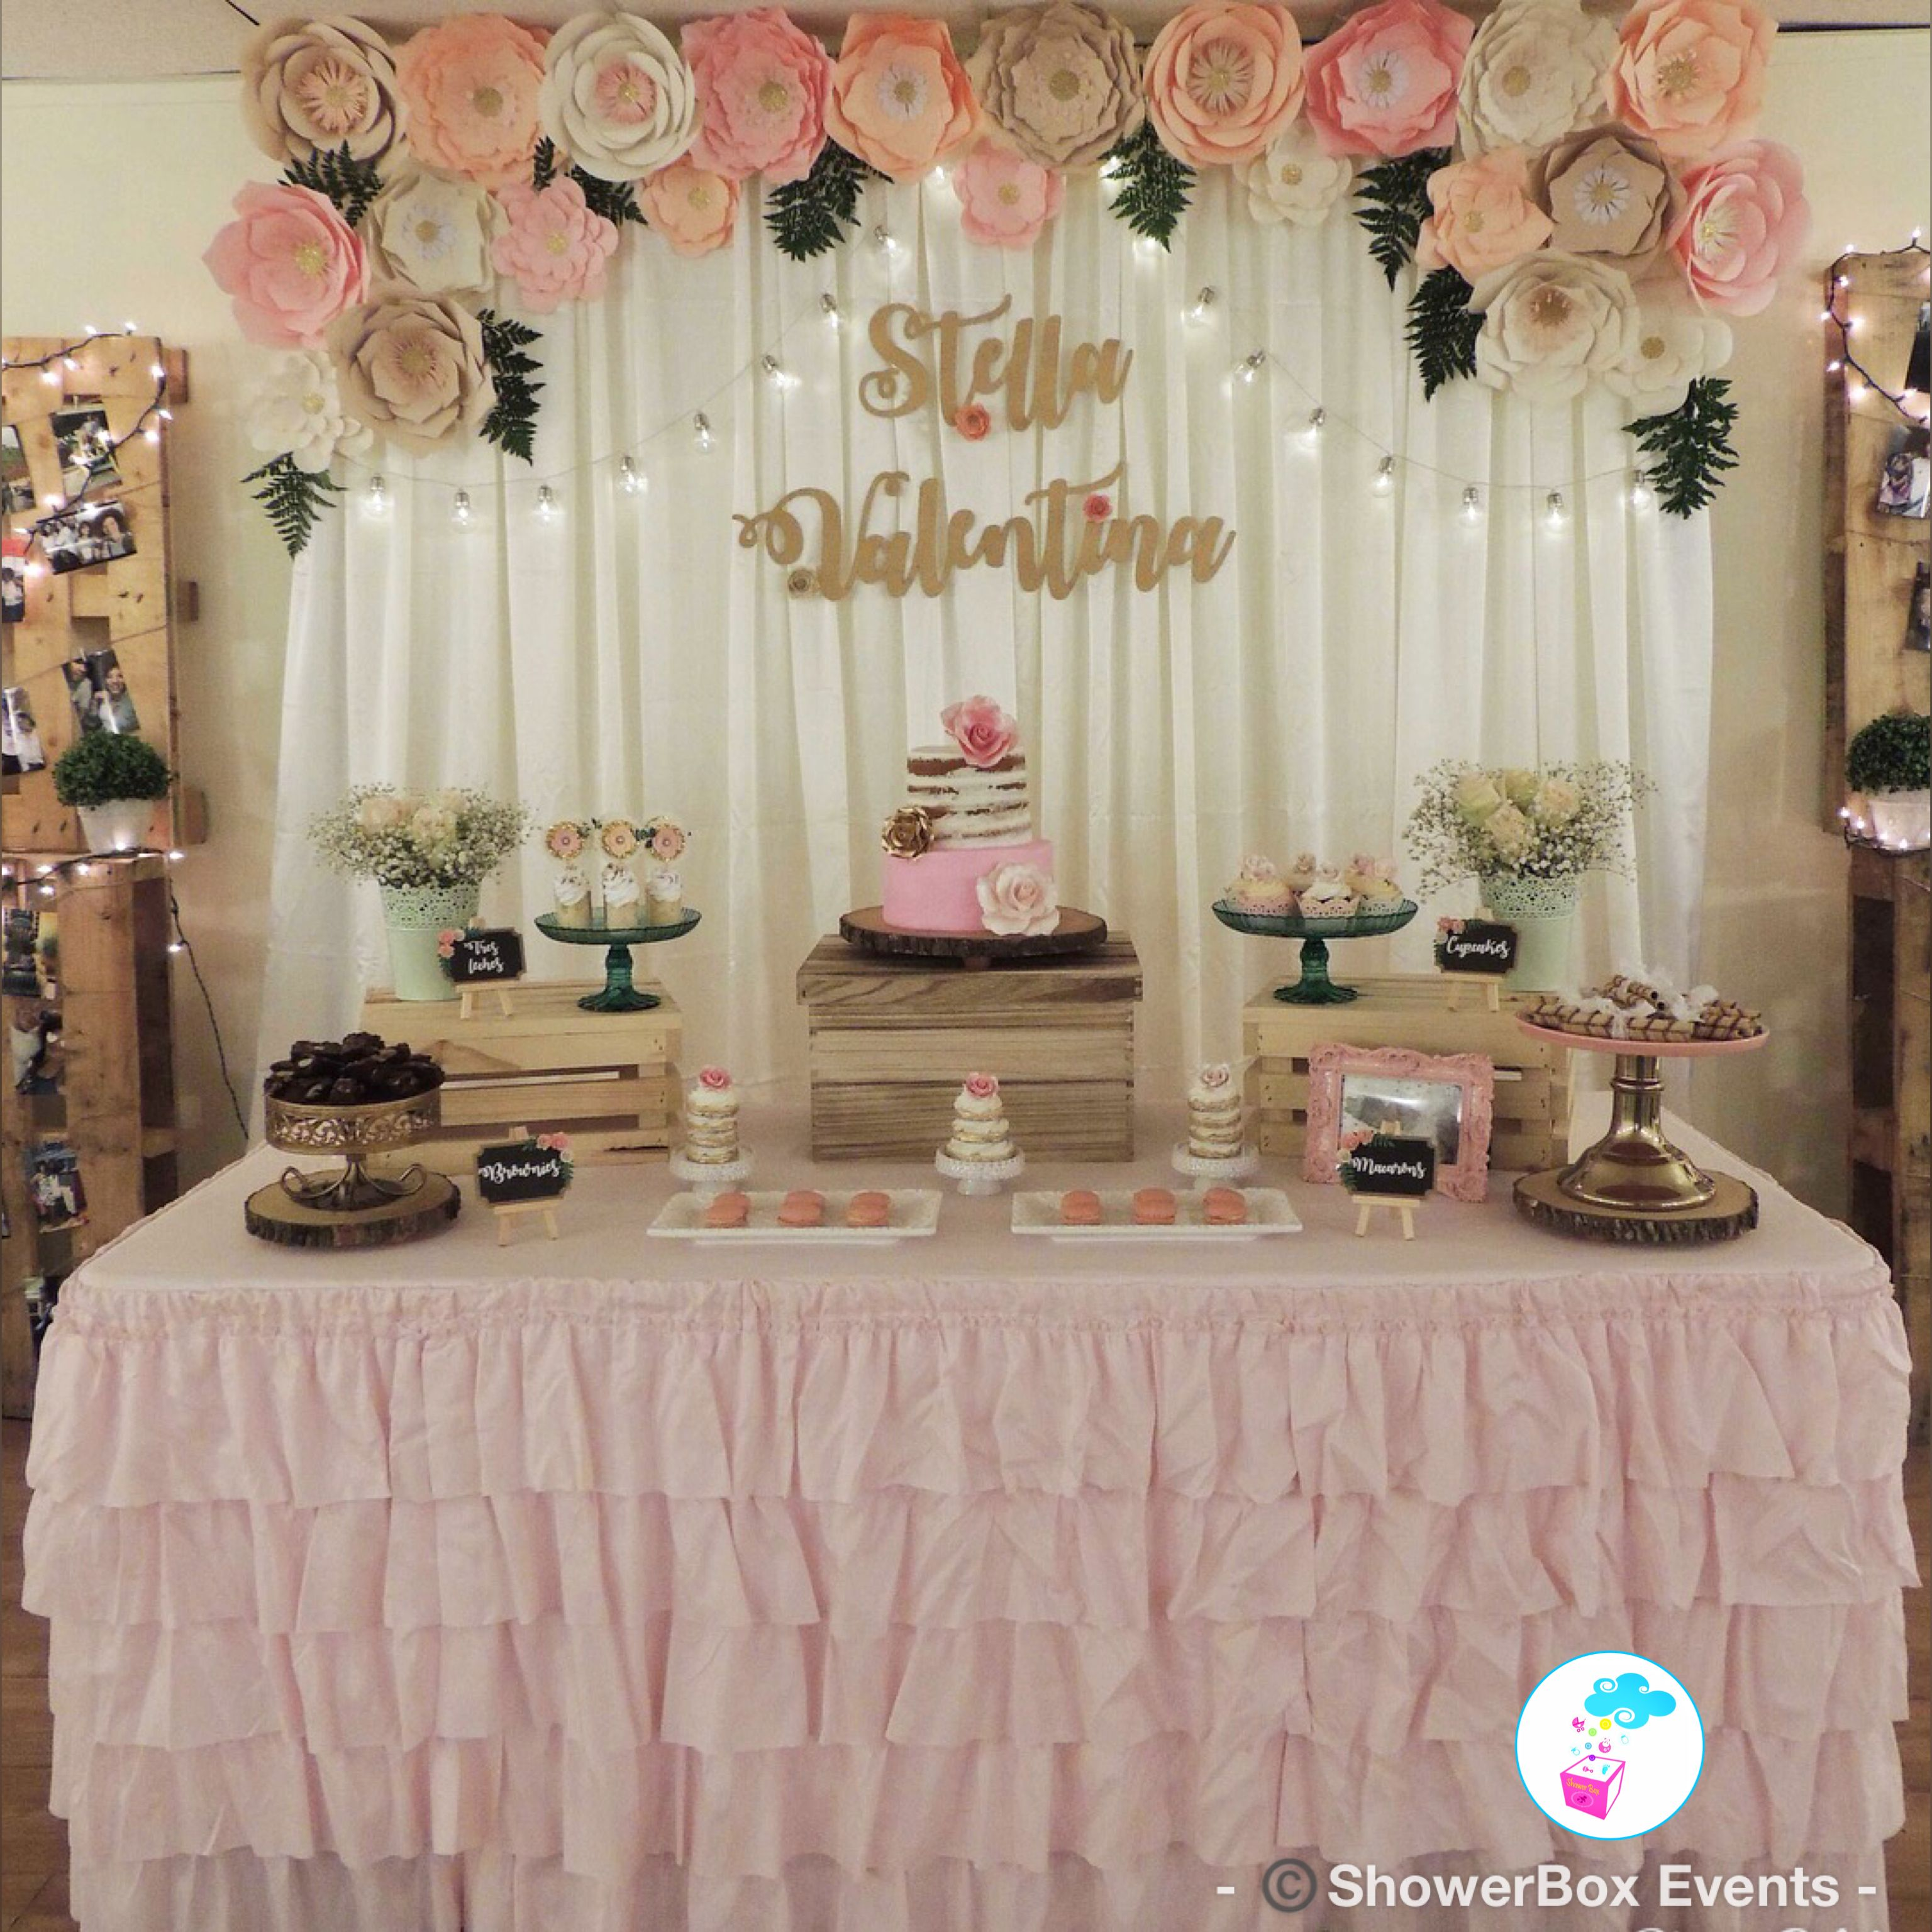 Floral Vintage Baby Shower Welcome Baby Showerbox Events 2017 Find Us On Fb Page Showe Baby Shower Vintage Baby Shower Decorations Decoracion Baby Shower